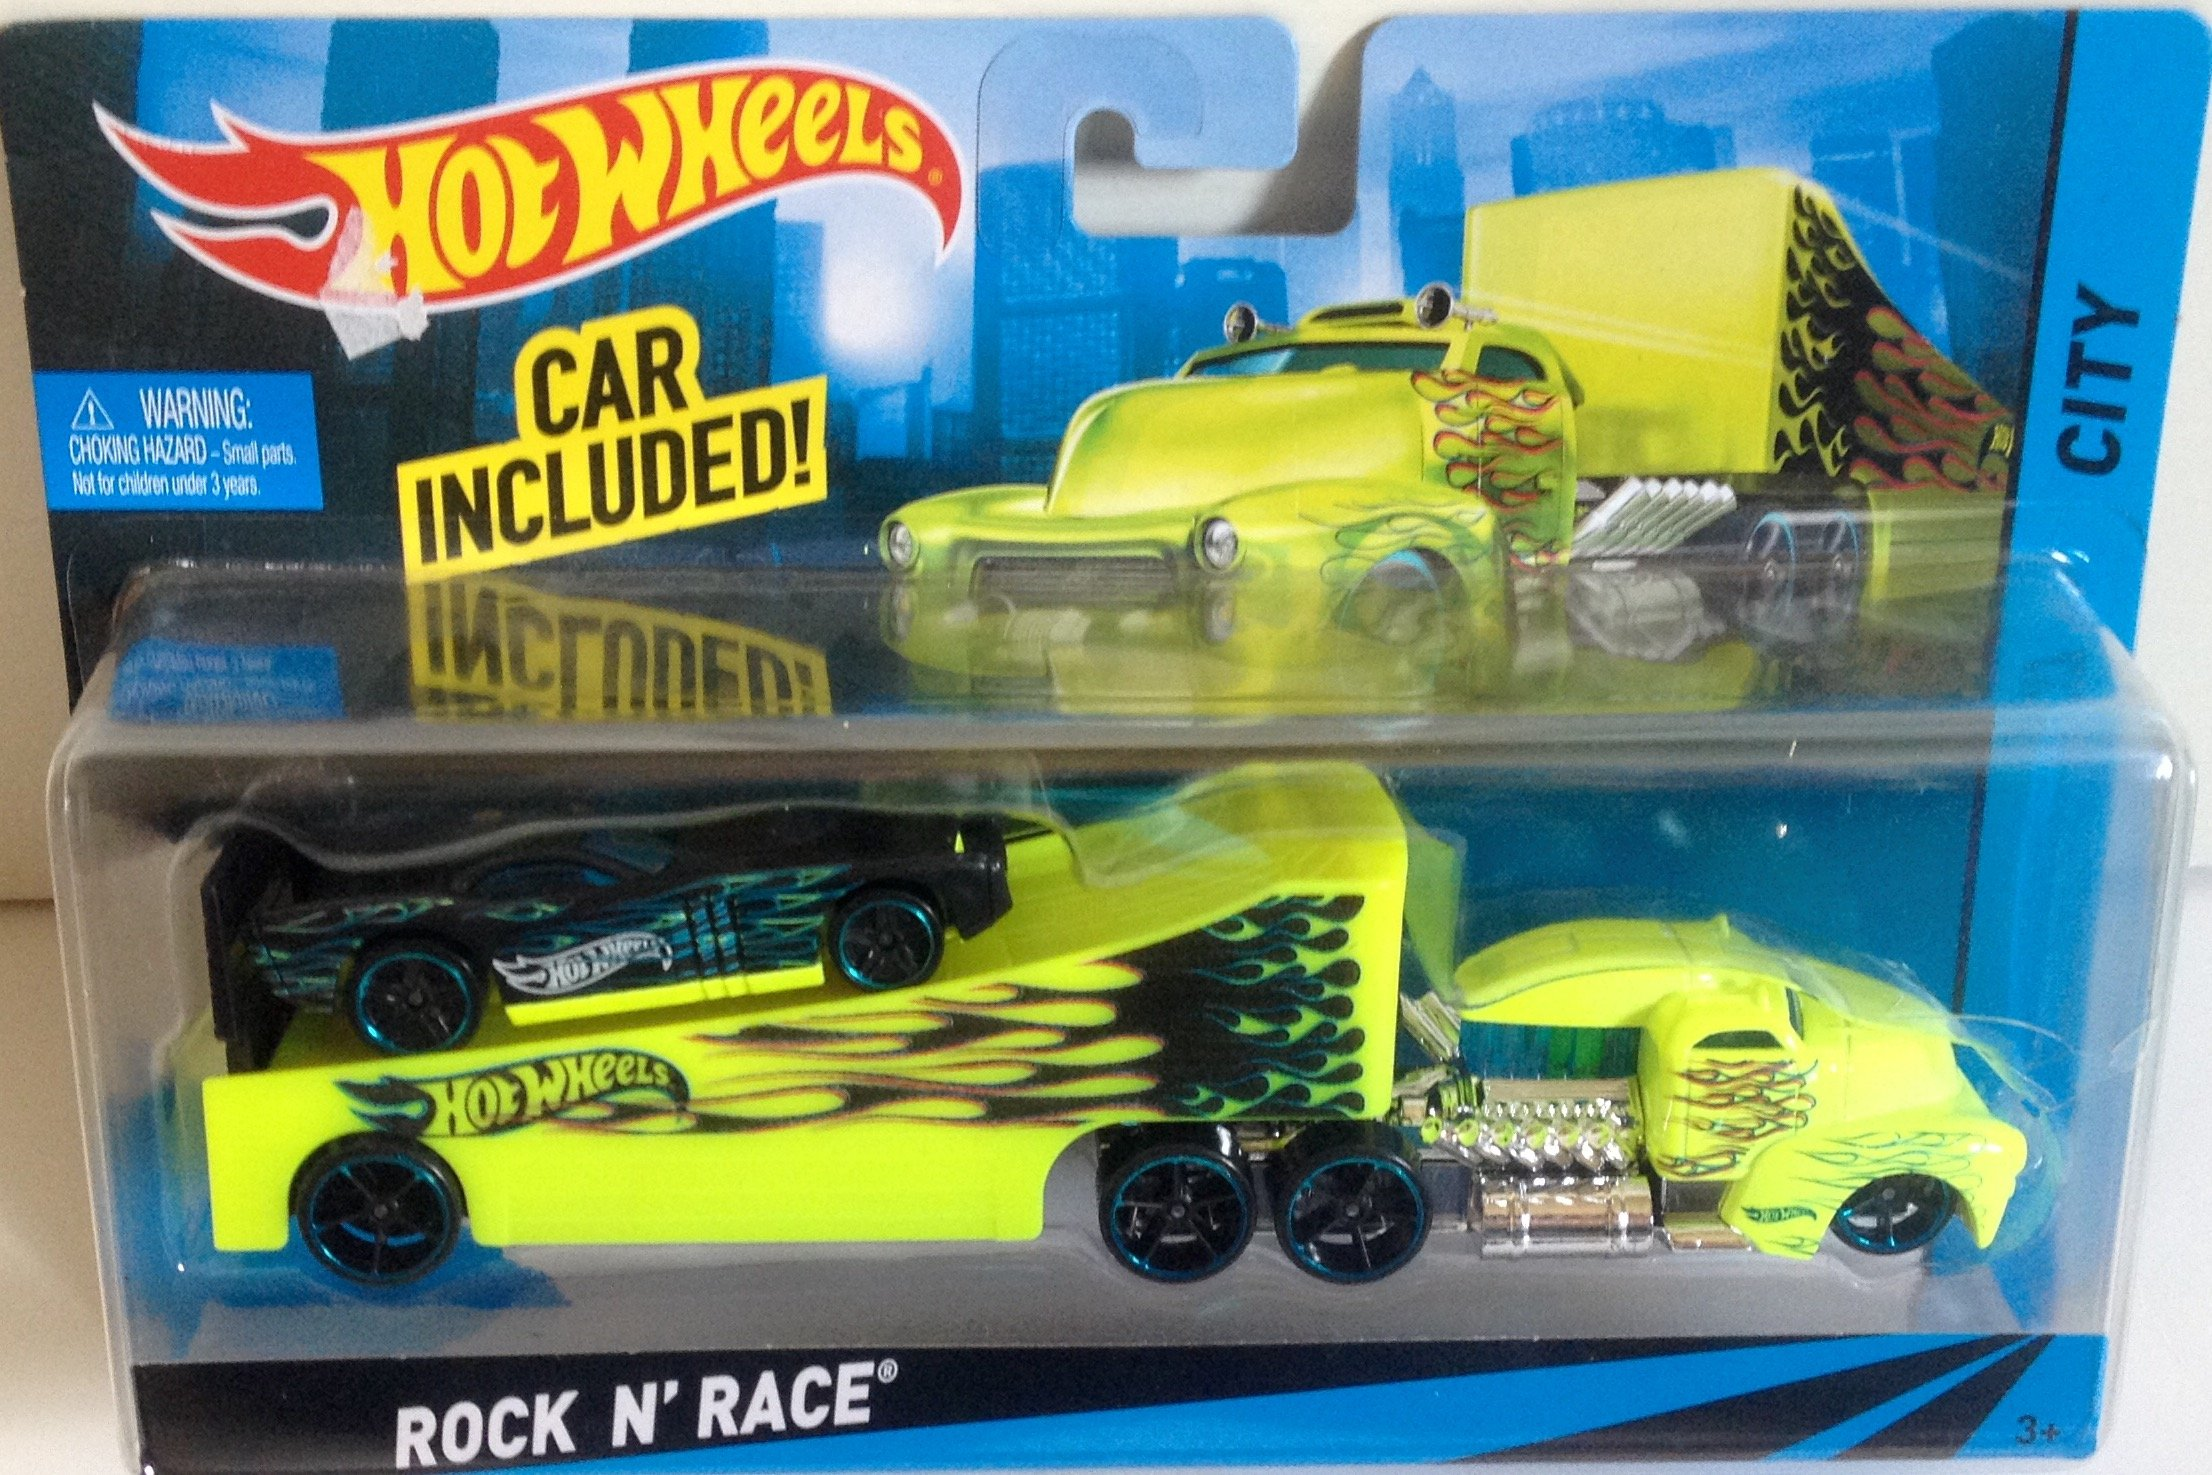 Hot Wheels Rock N' Race City GreenTransporter and Rig with Black Sports Car